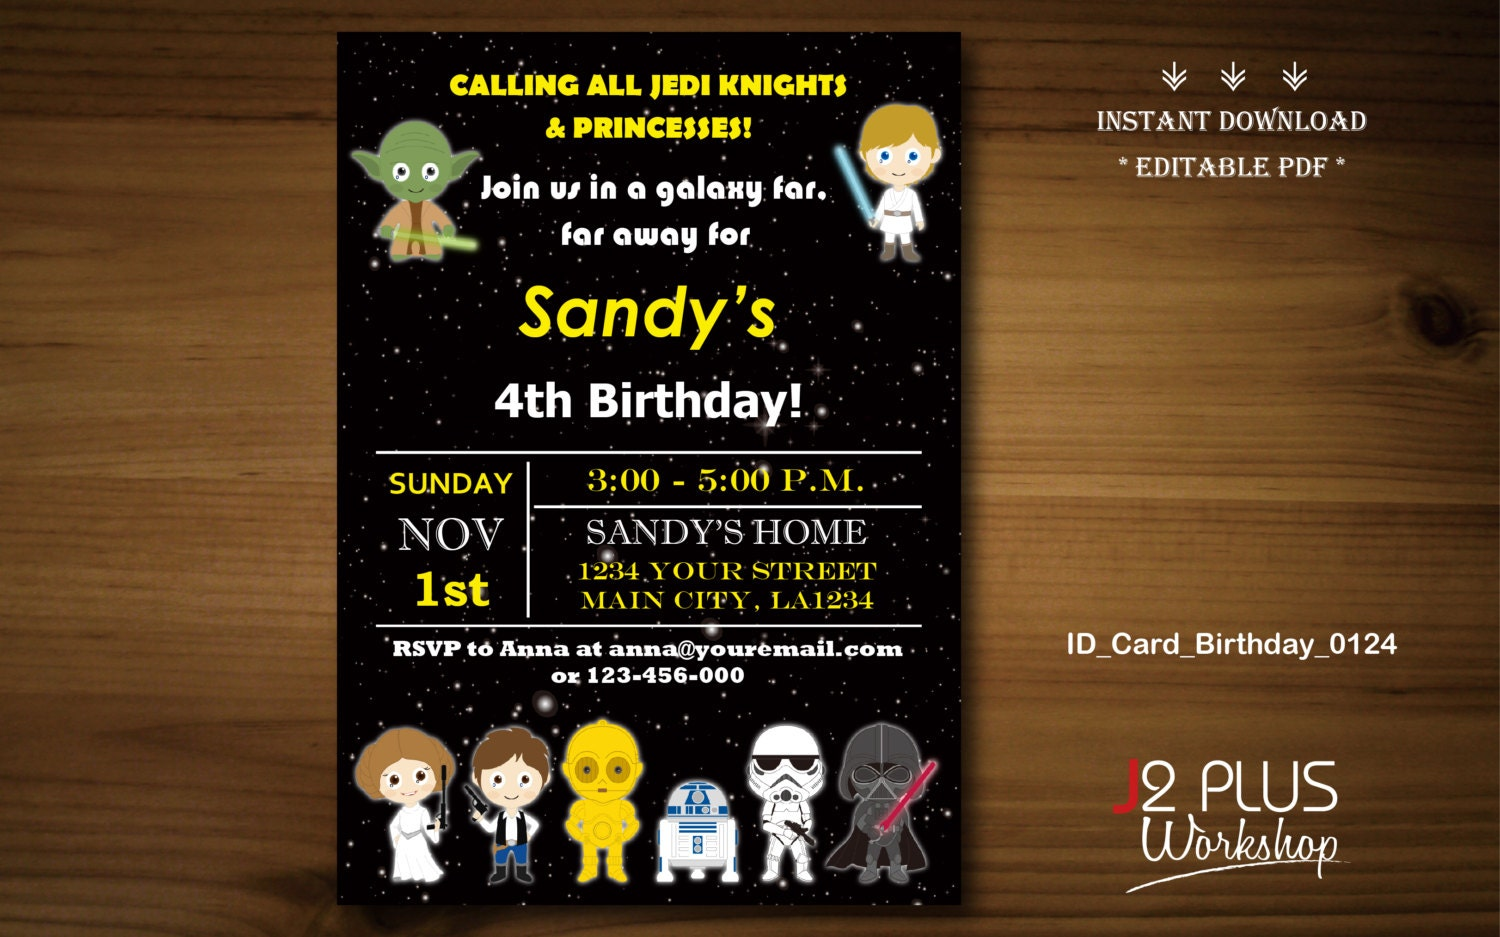 INSTANT DOWNLOAD Star Wars Birthday Invitation Card Star - Star wars birthday invitation diy